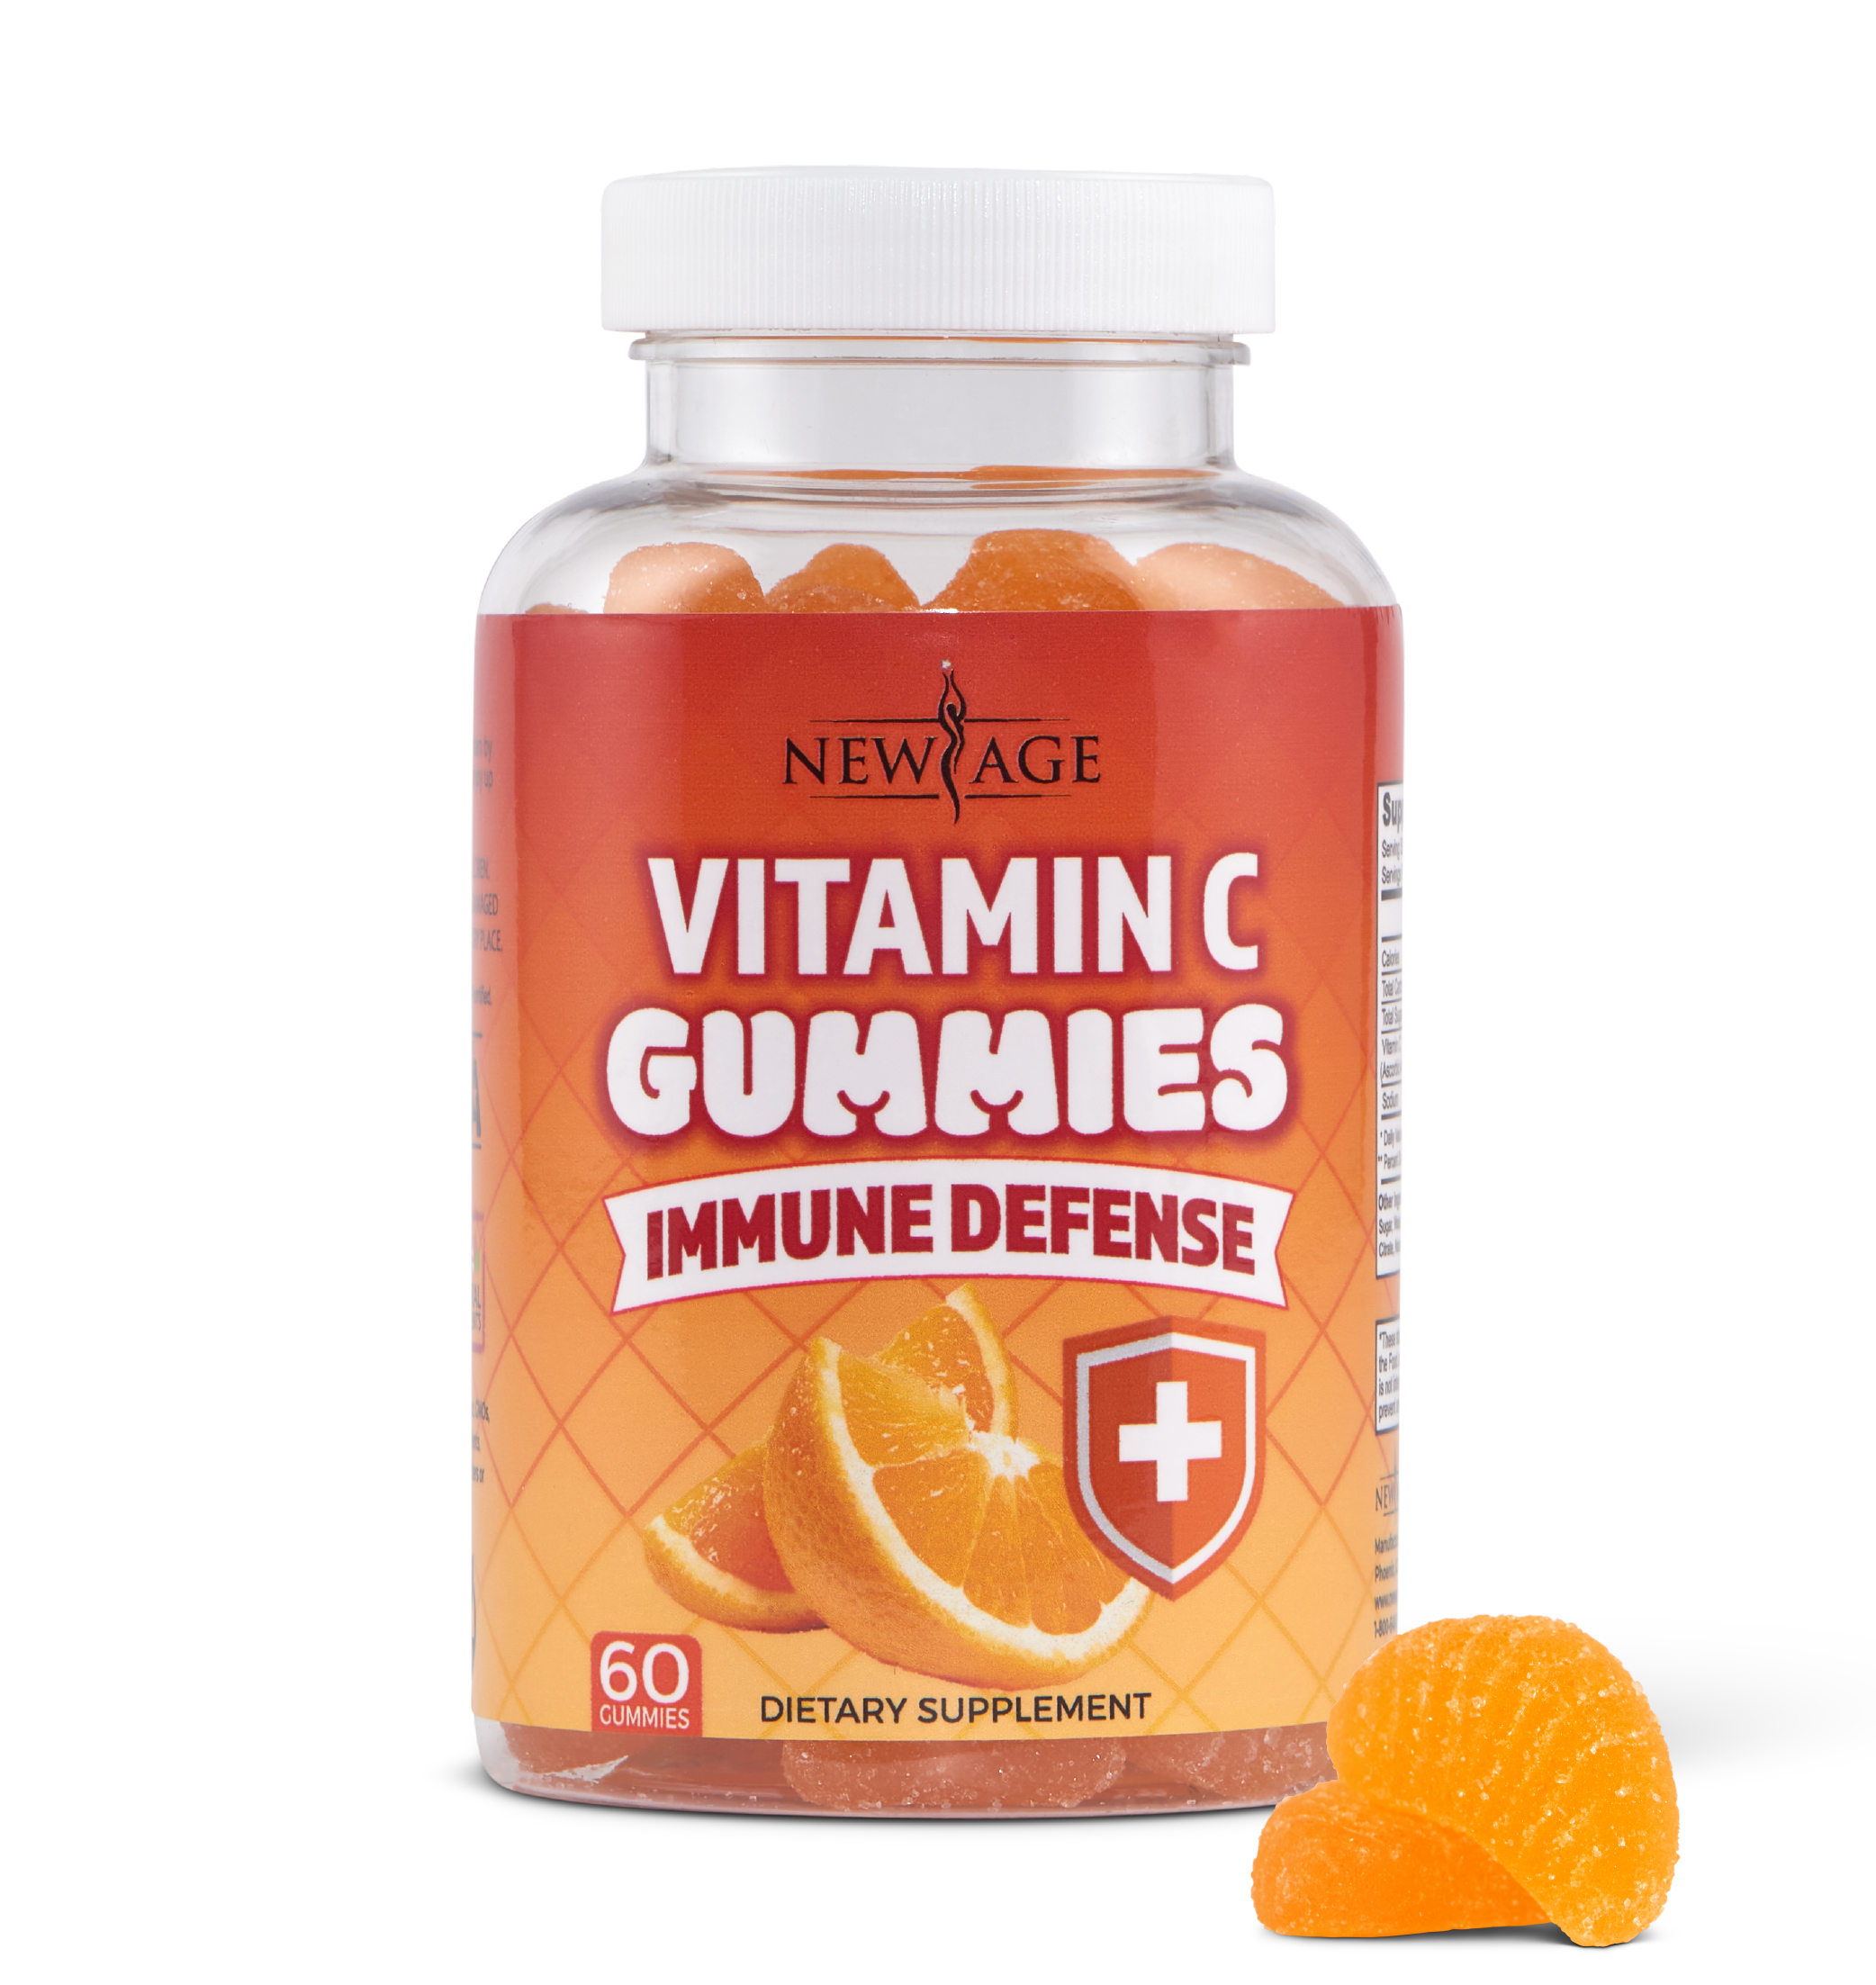 New Age Vitamin C Gummies - One Bottle